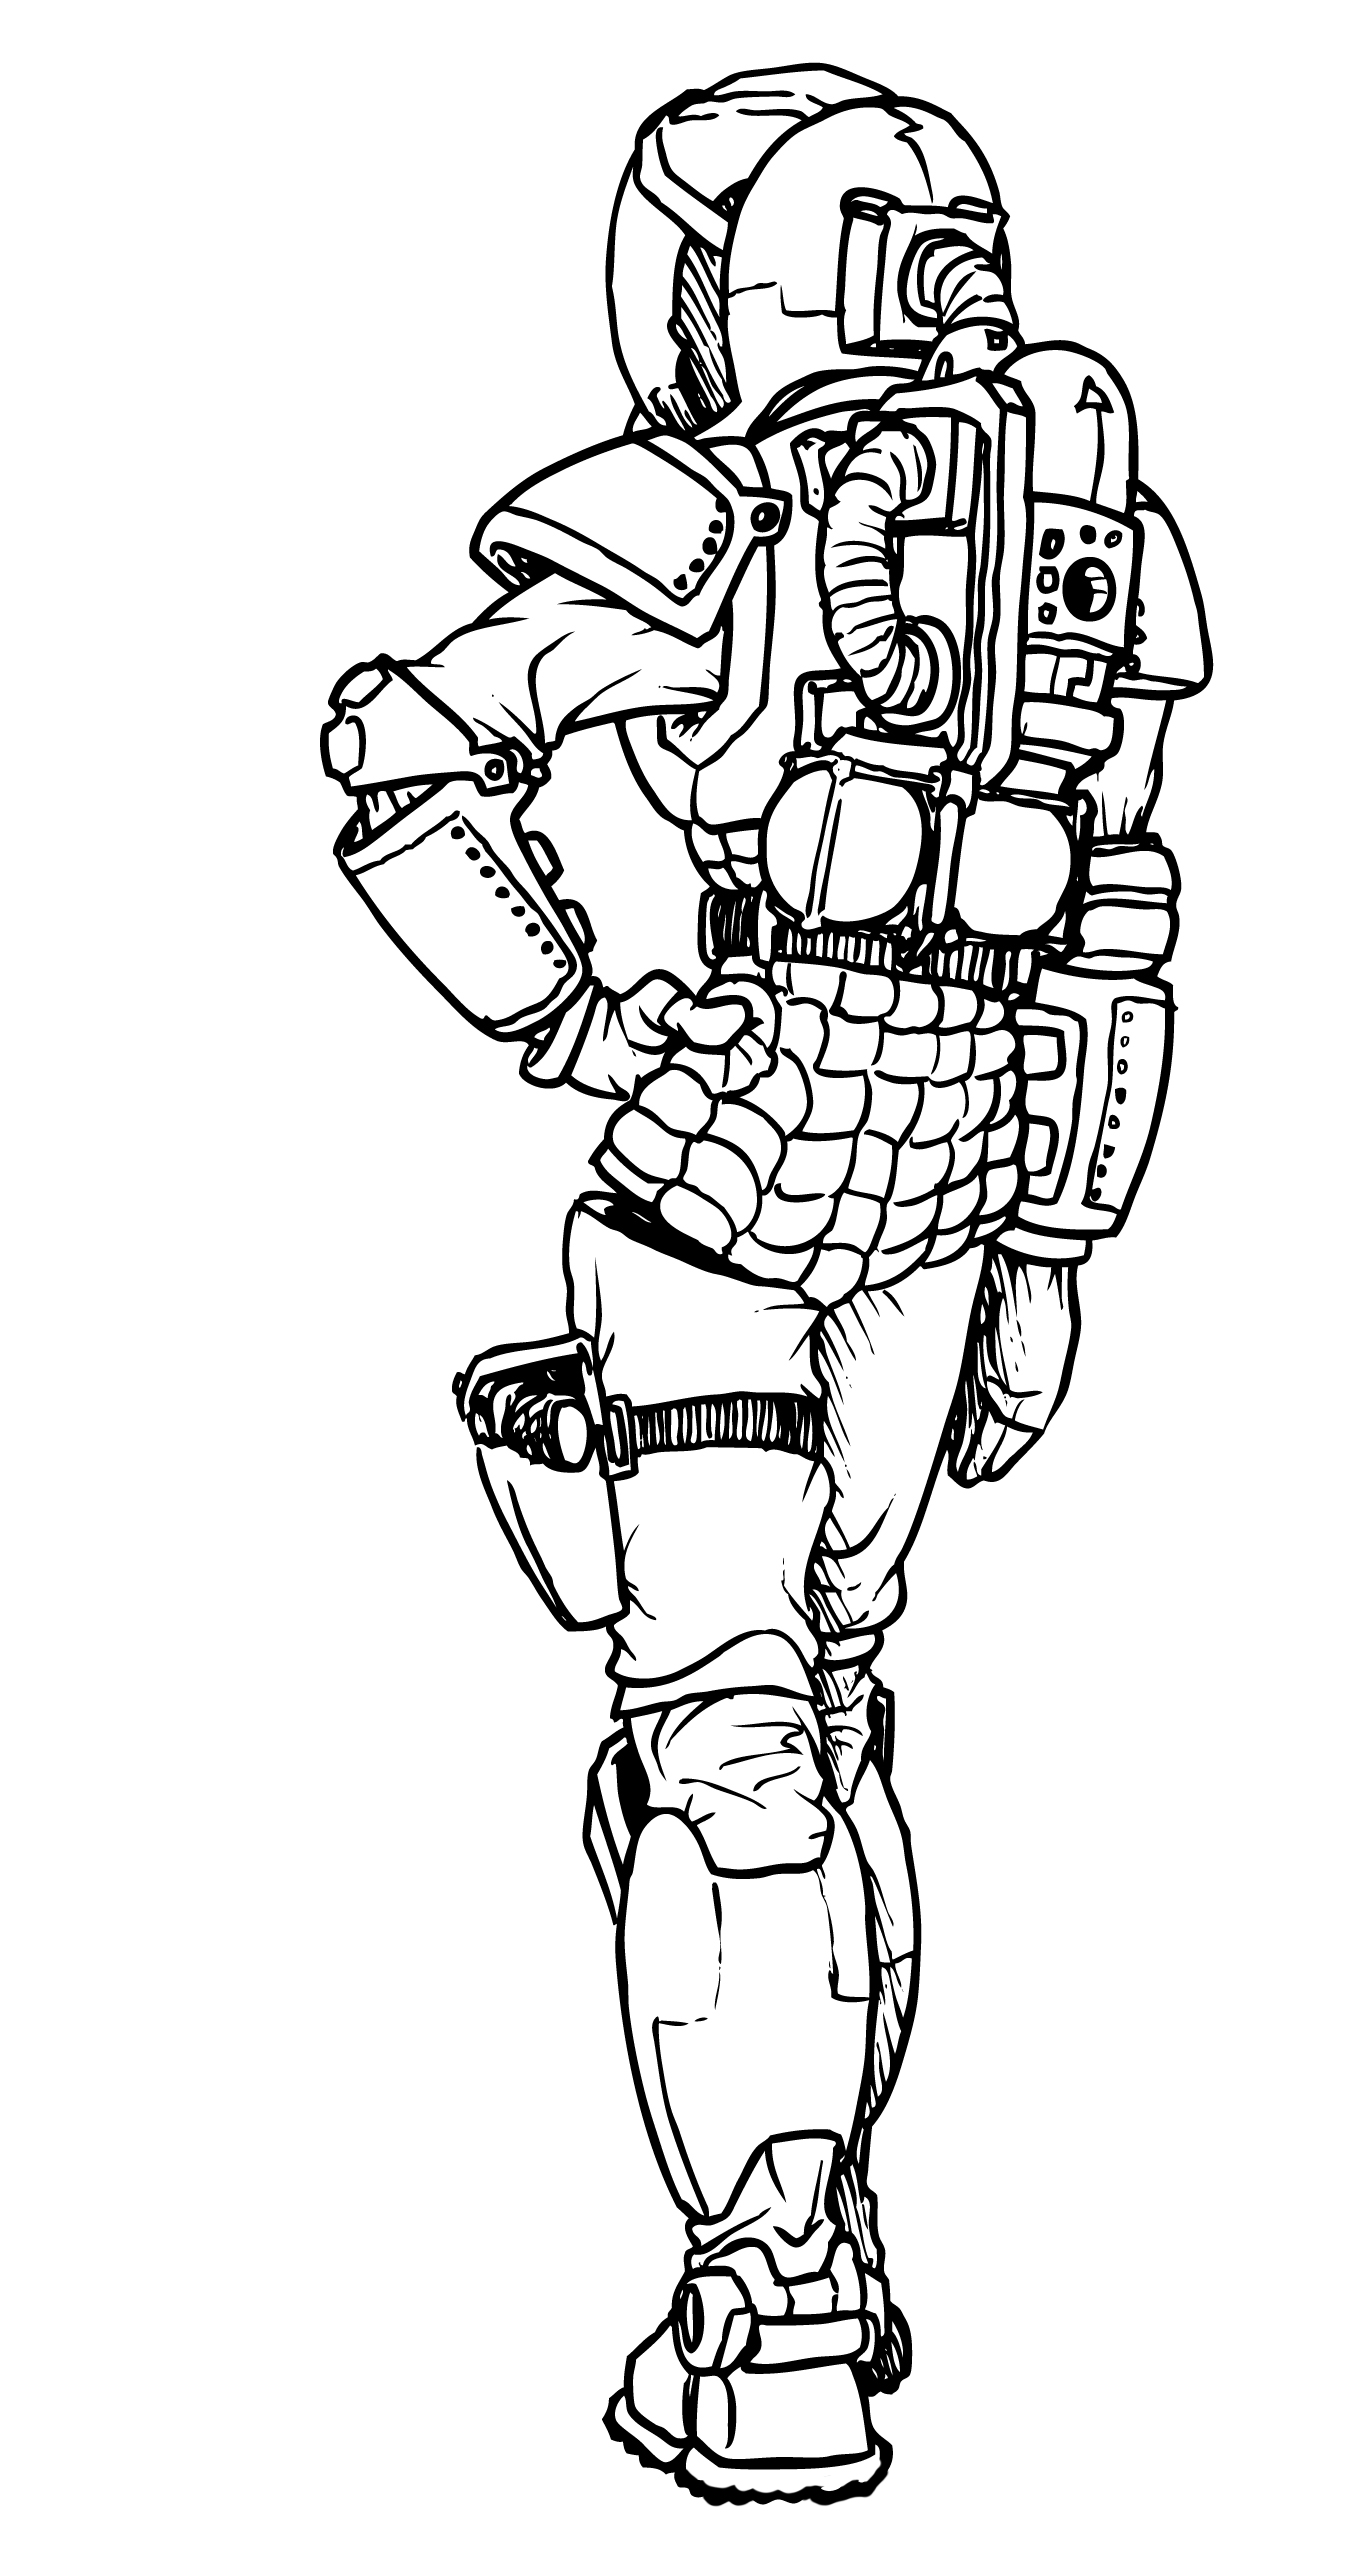 how to draw a space suit jwallace the animator space suit how suit space draw a to